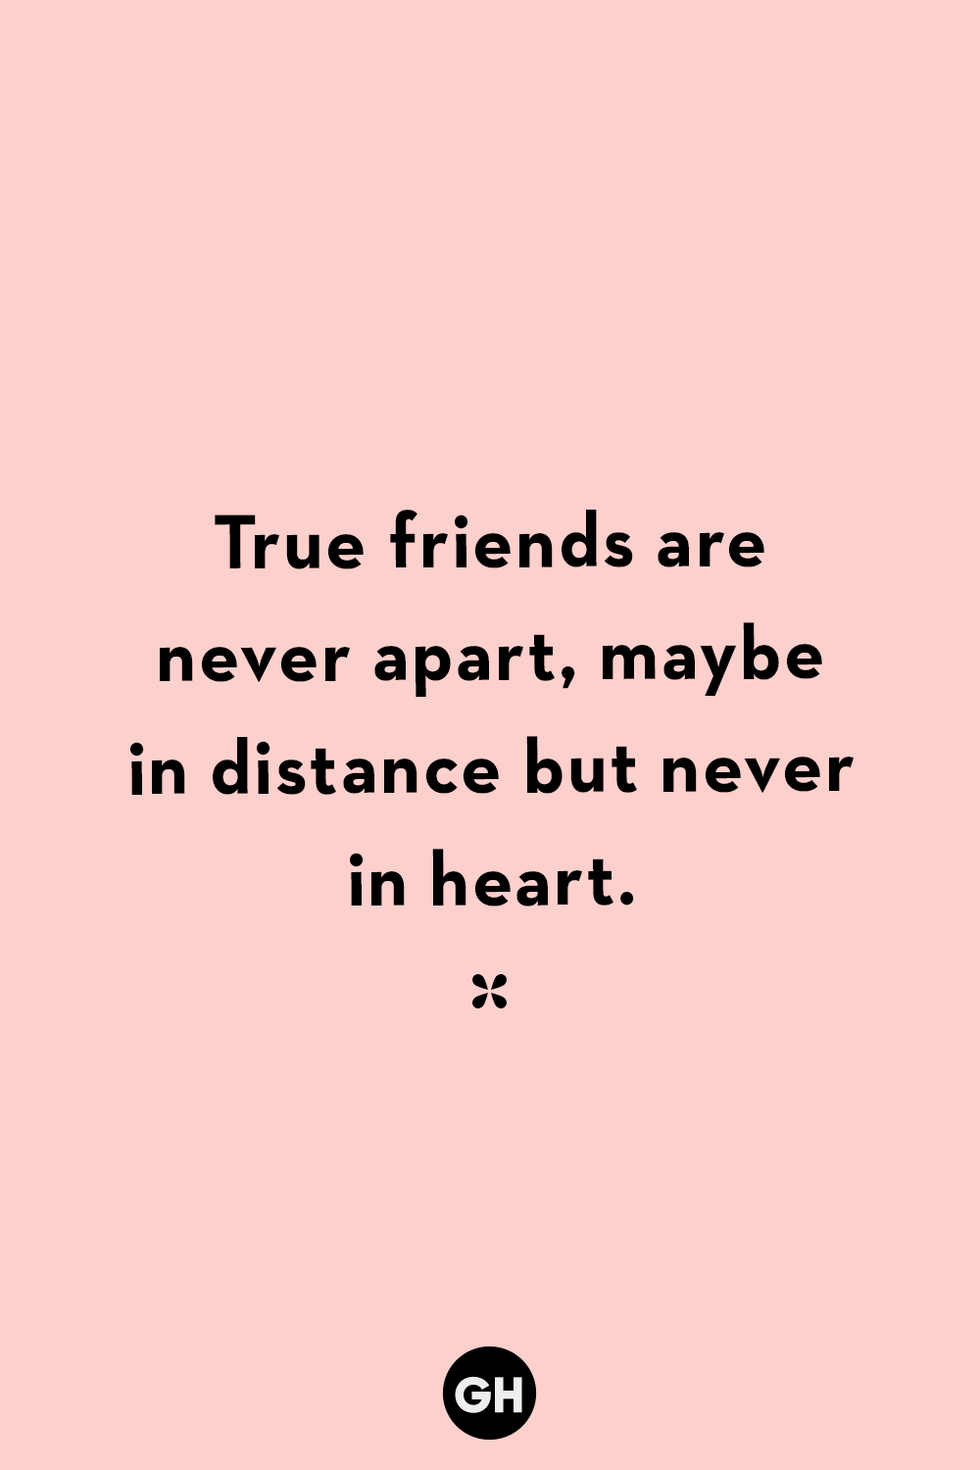 40 Friendship Quotes to Share With Your Besties